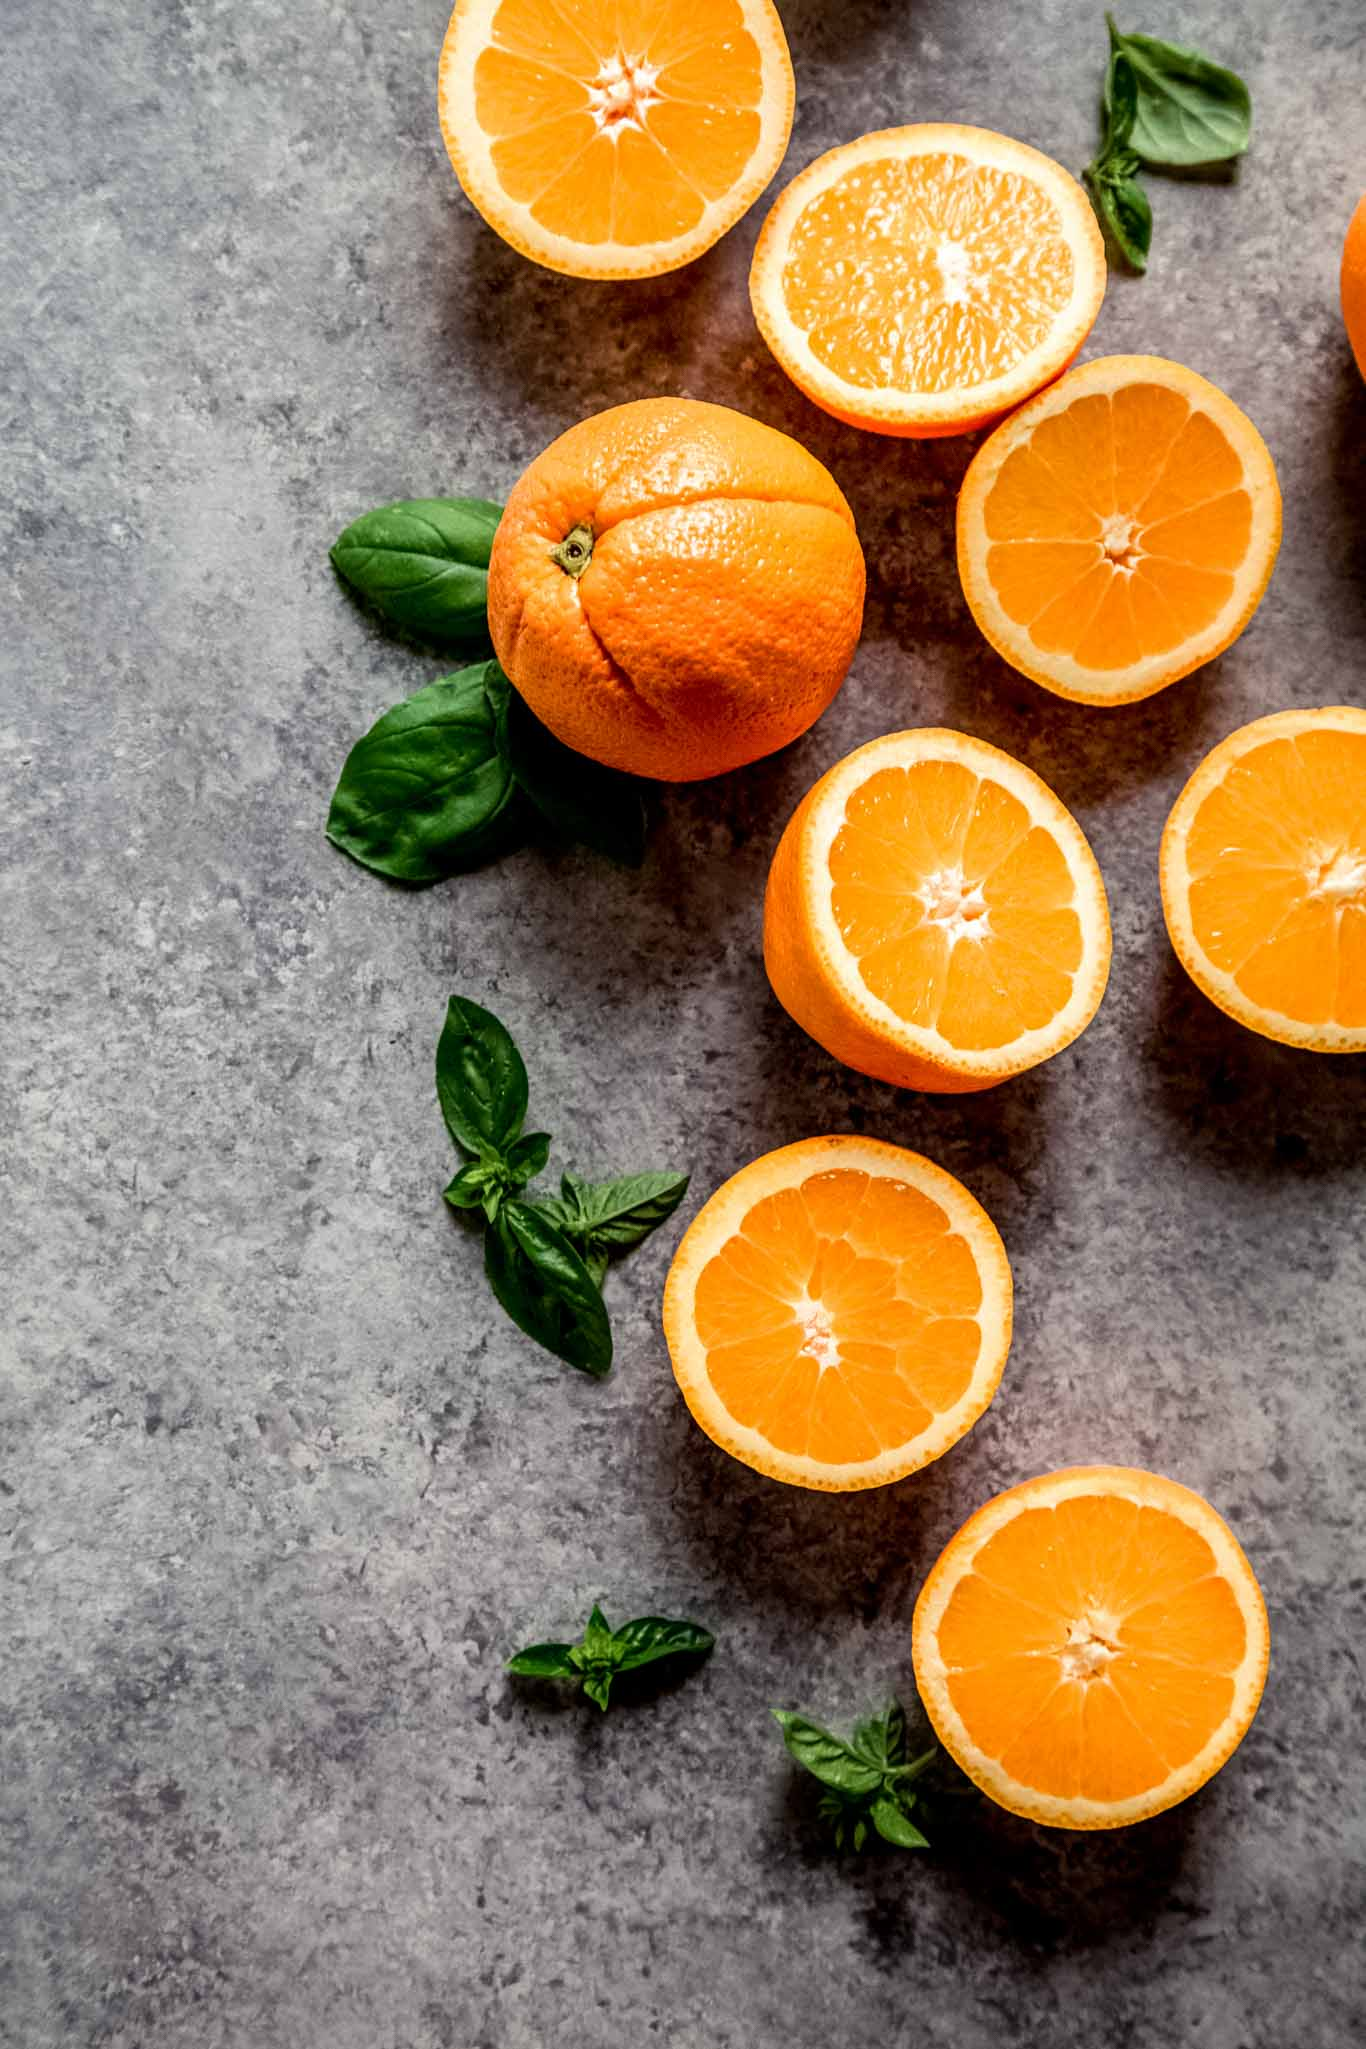 Oranges on concrete counter.